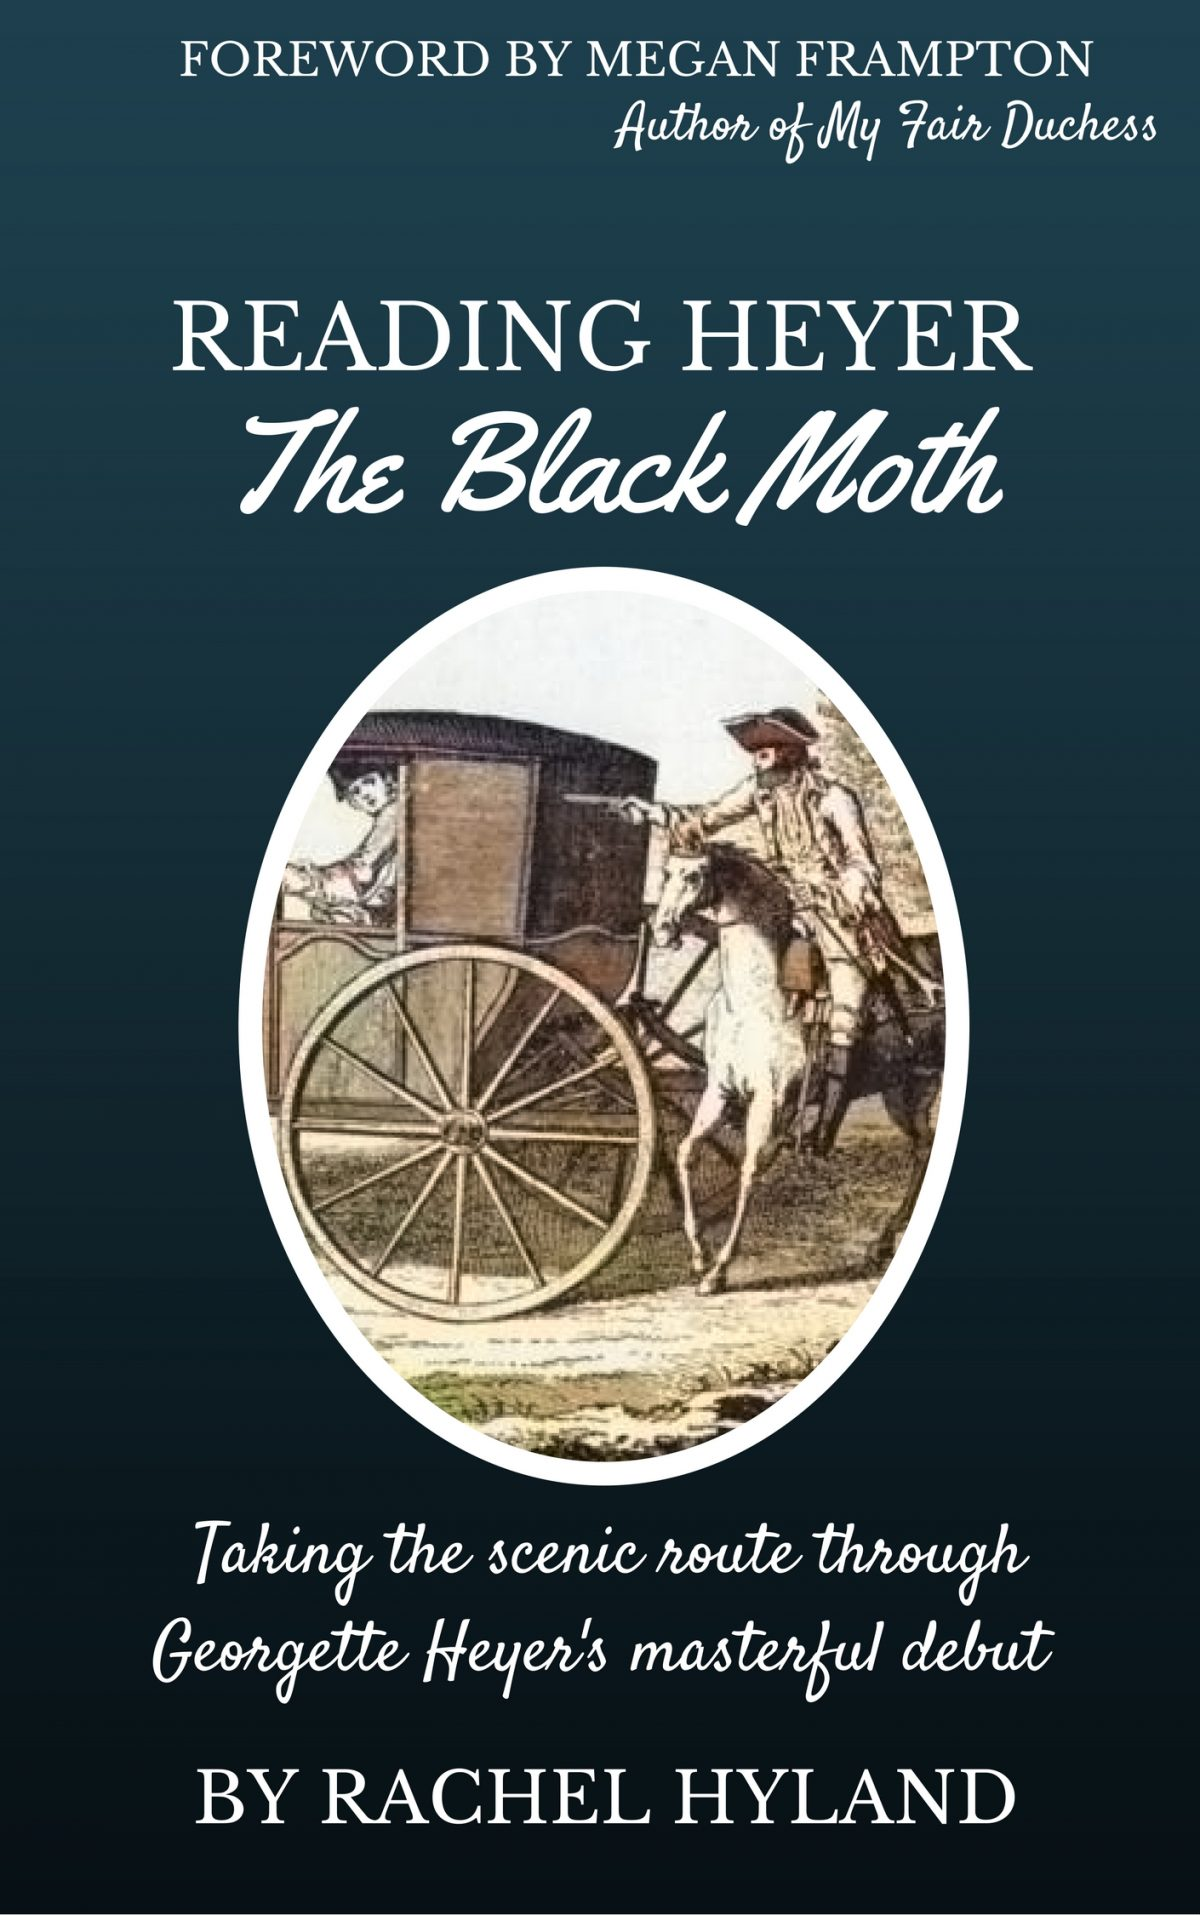 Reading Heyer: The Black Moth: Chapter XII